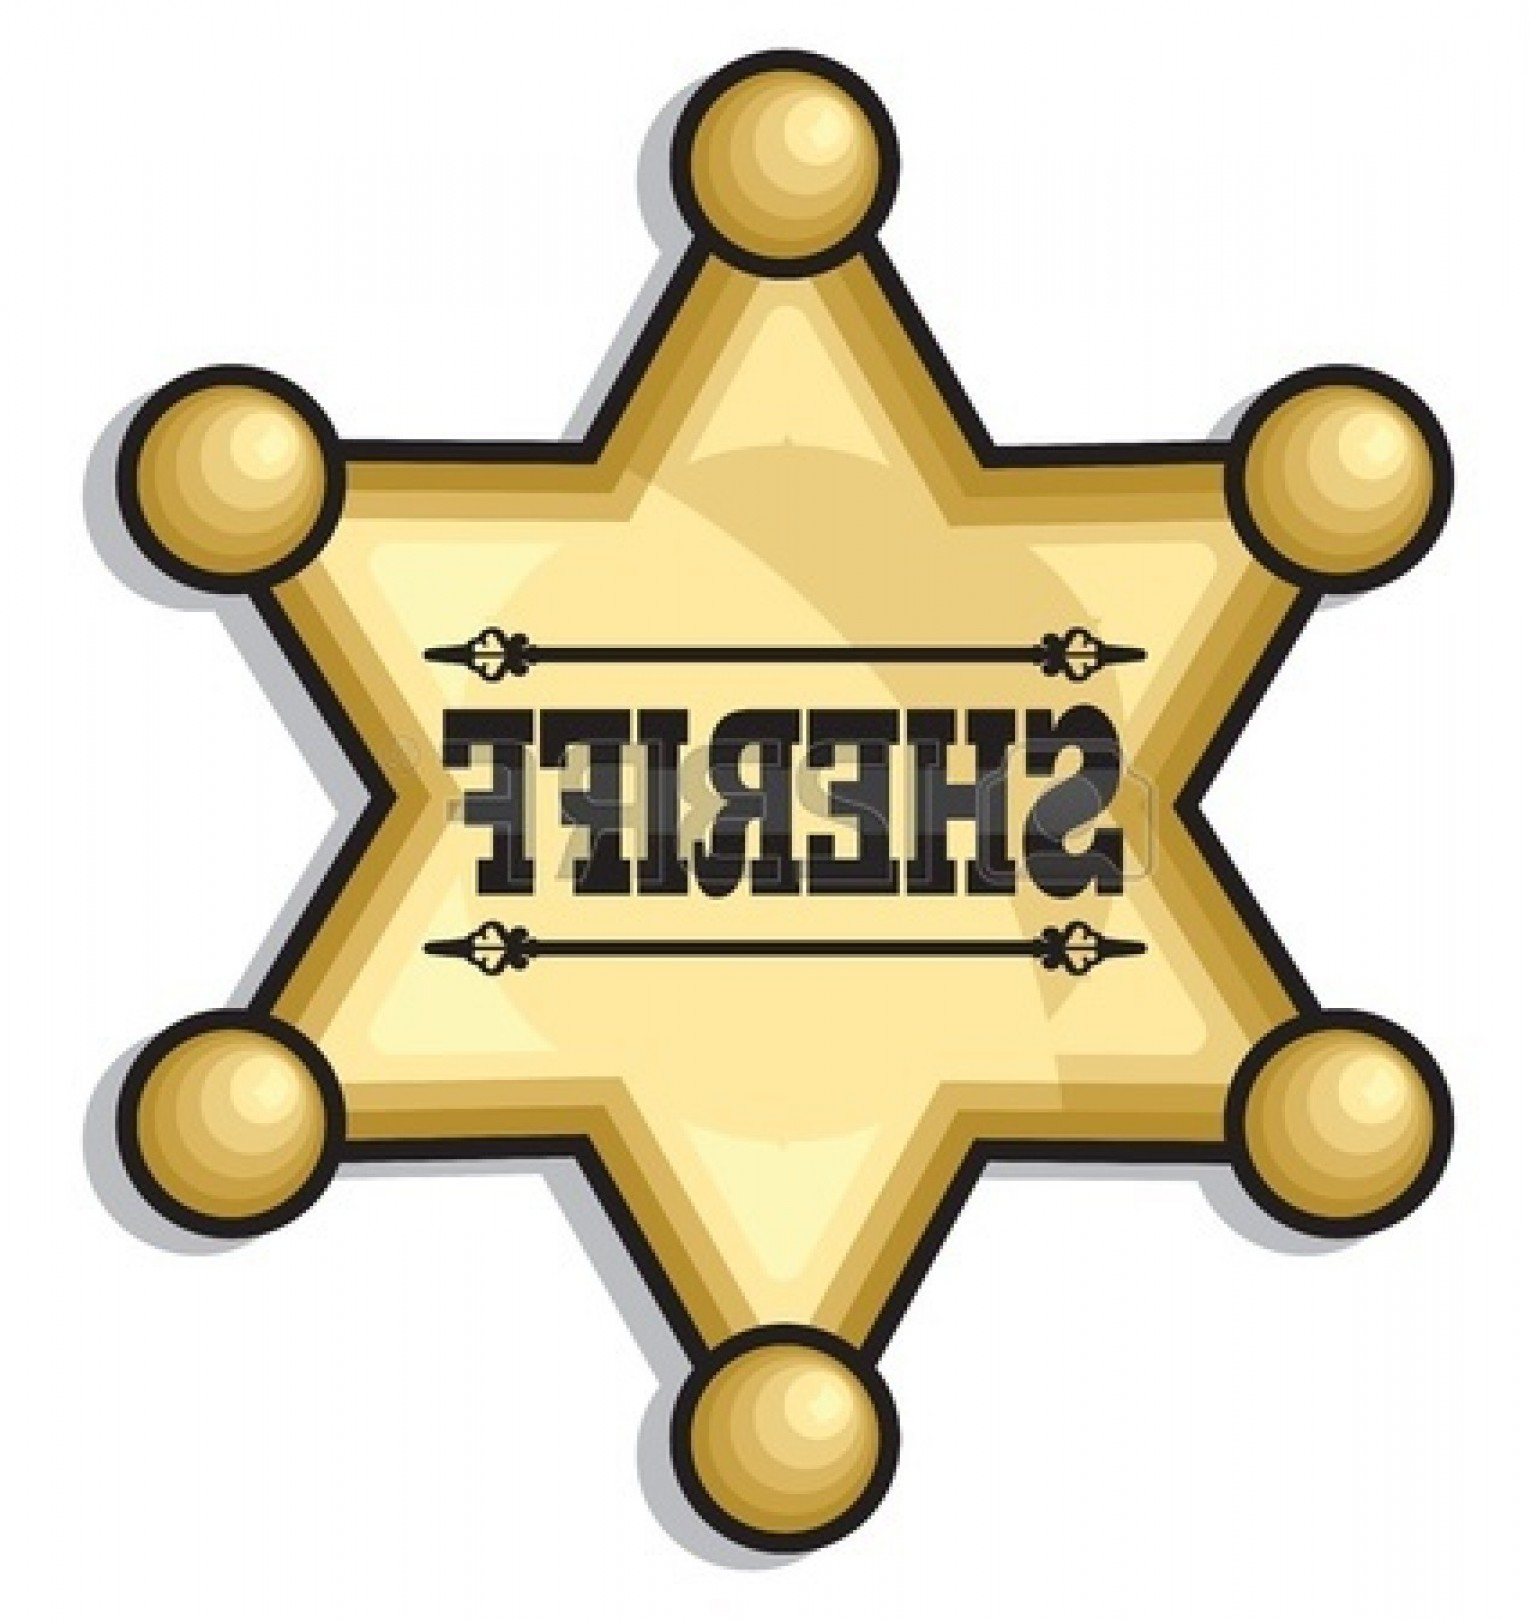 Star police badge clipart clipart free library Free Sheriff Star Badge Clipart Graphic   VectoRealy clipart free library